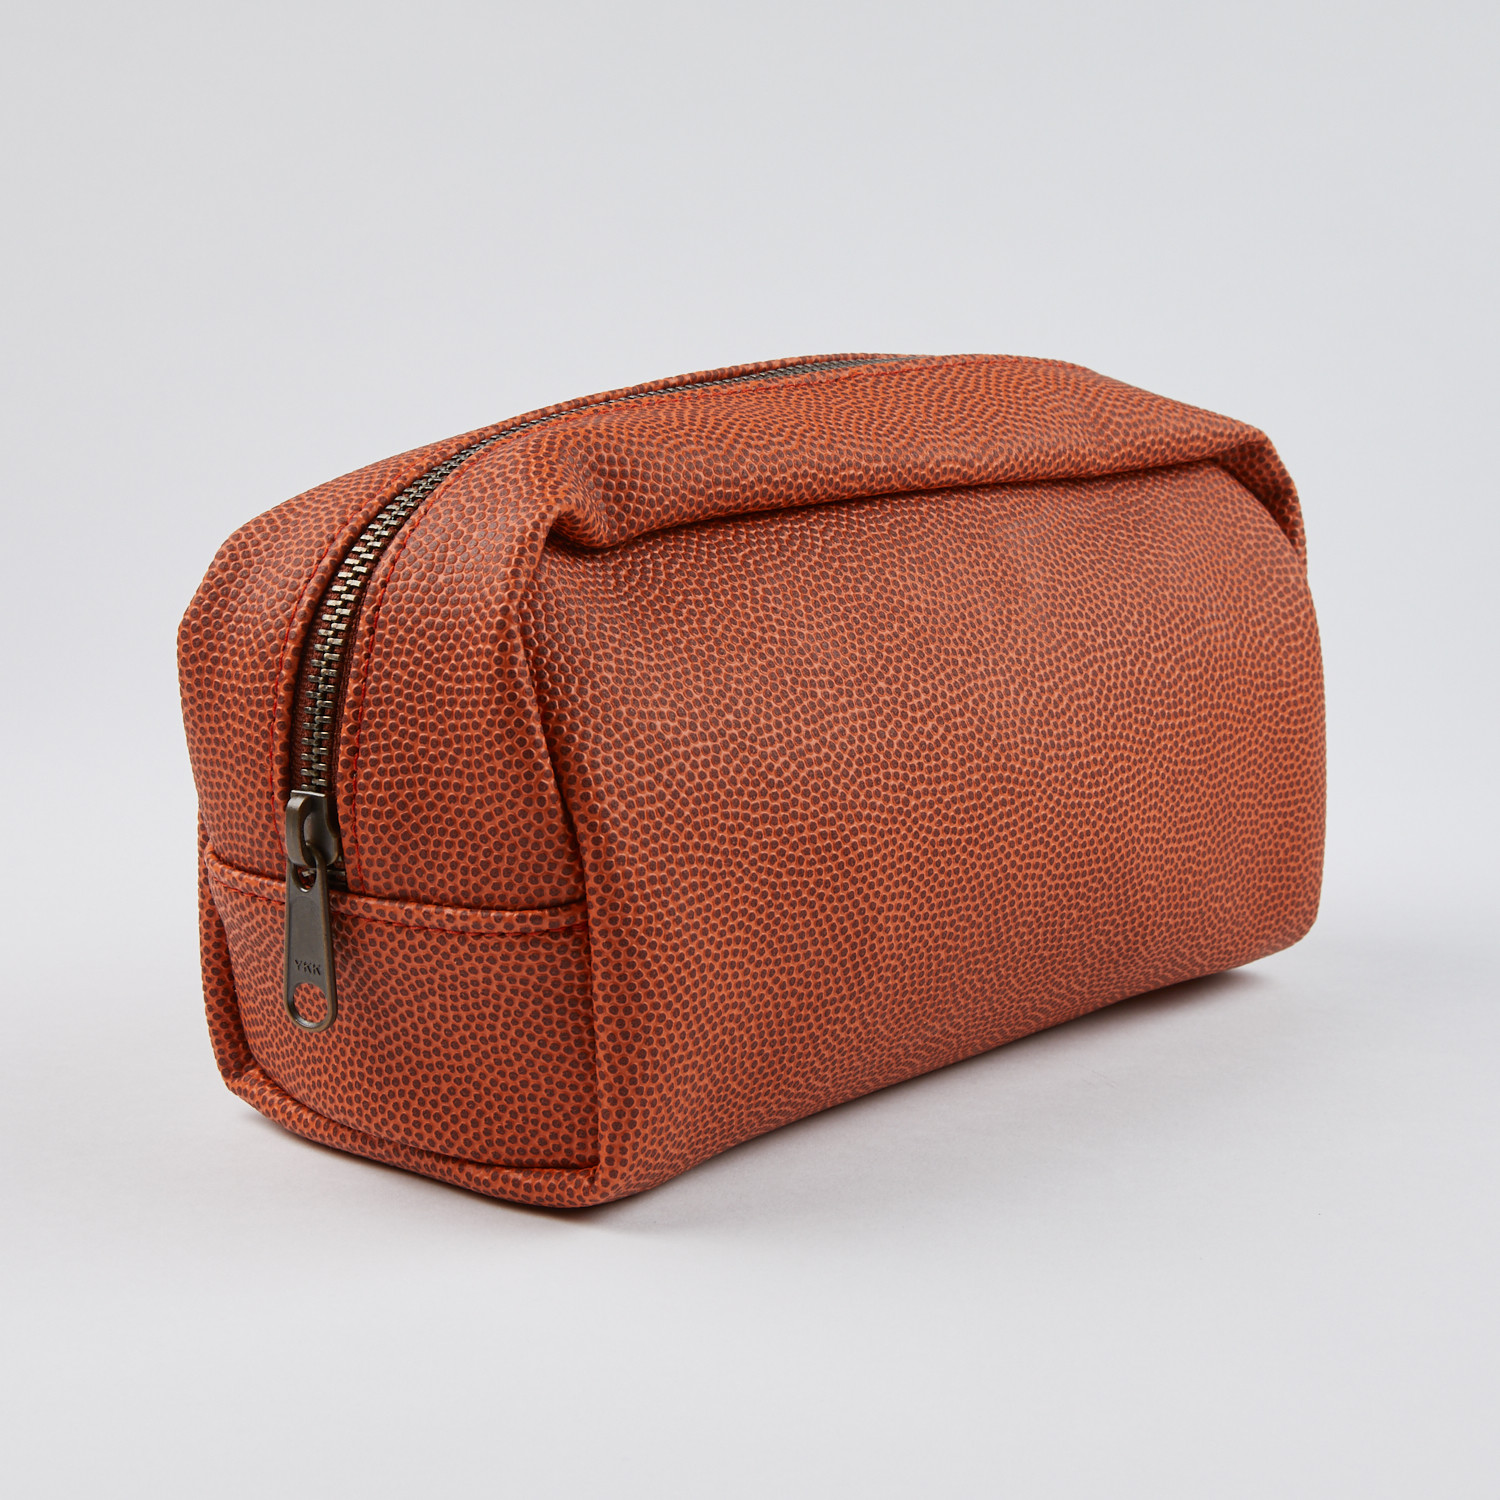 Basketball Dopp Kit    Orange - Vestige - Touch of Modern f9be11edb0648